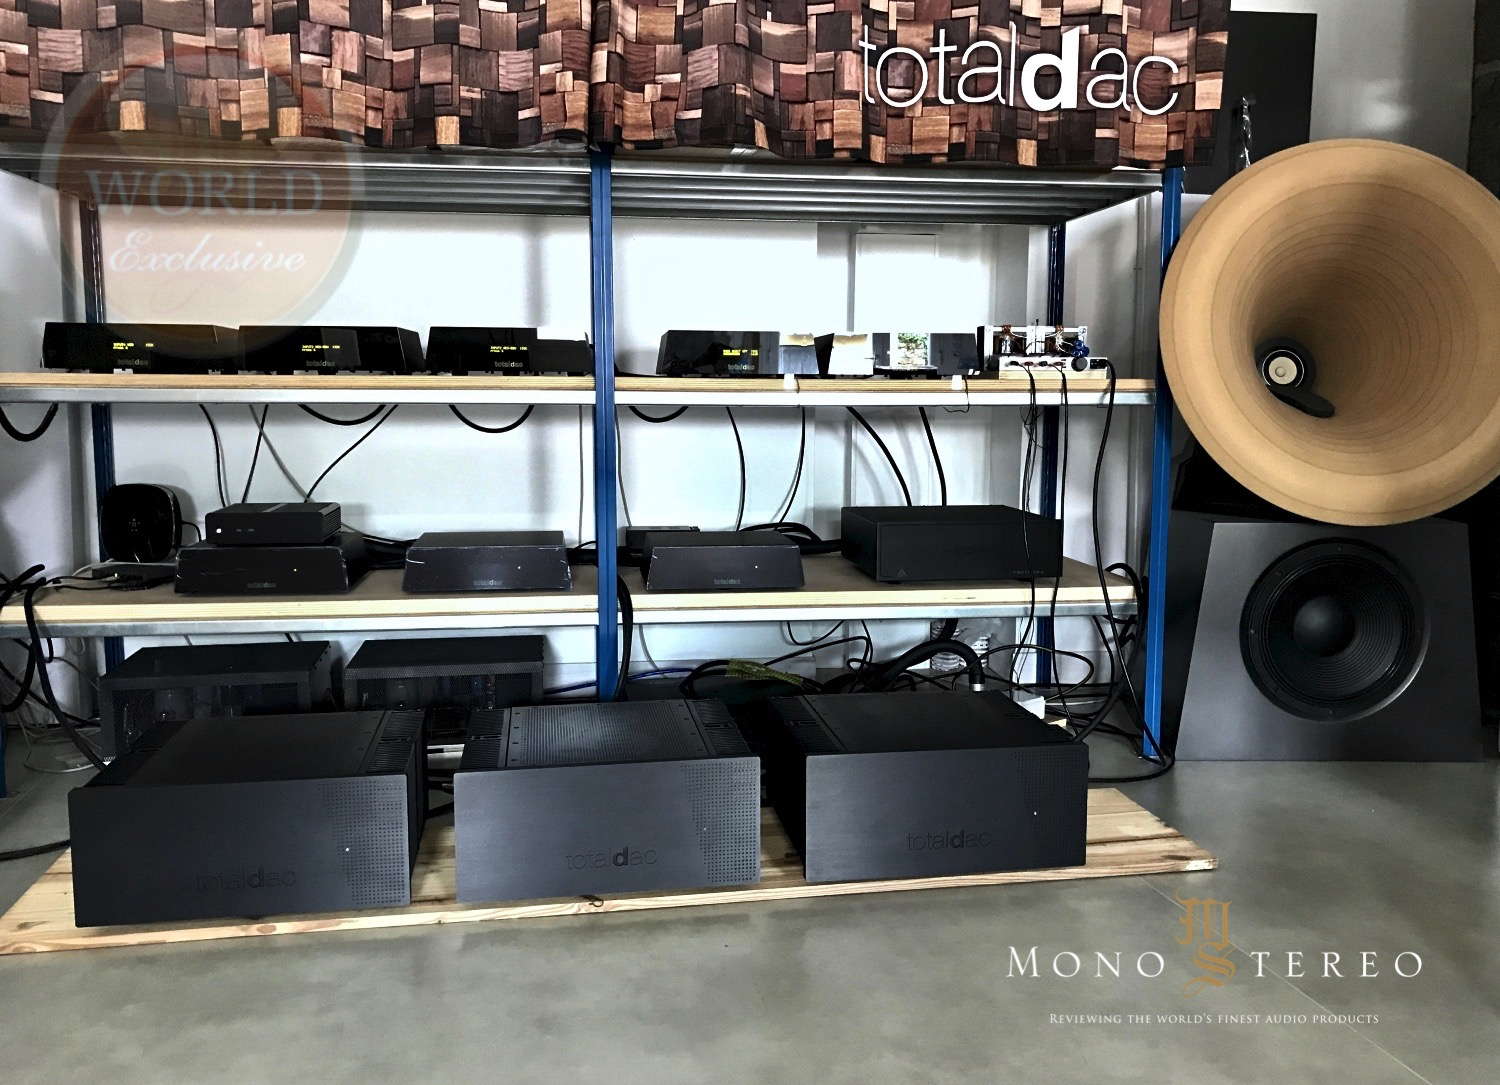 Mono and Stereo High-End Audio Magazine: First Totaldac Amp